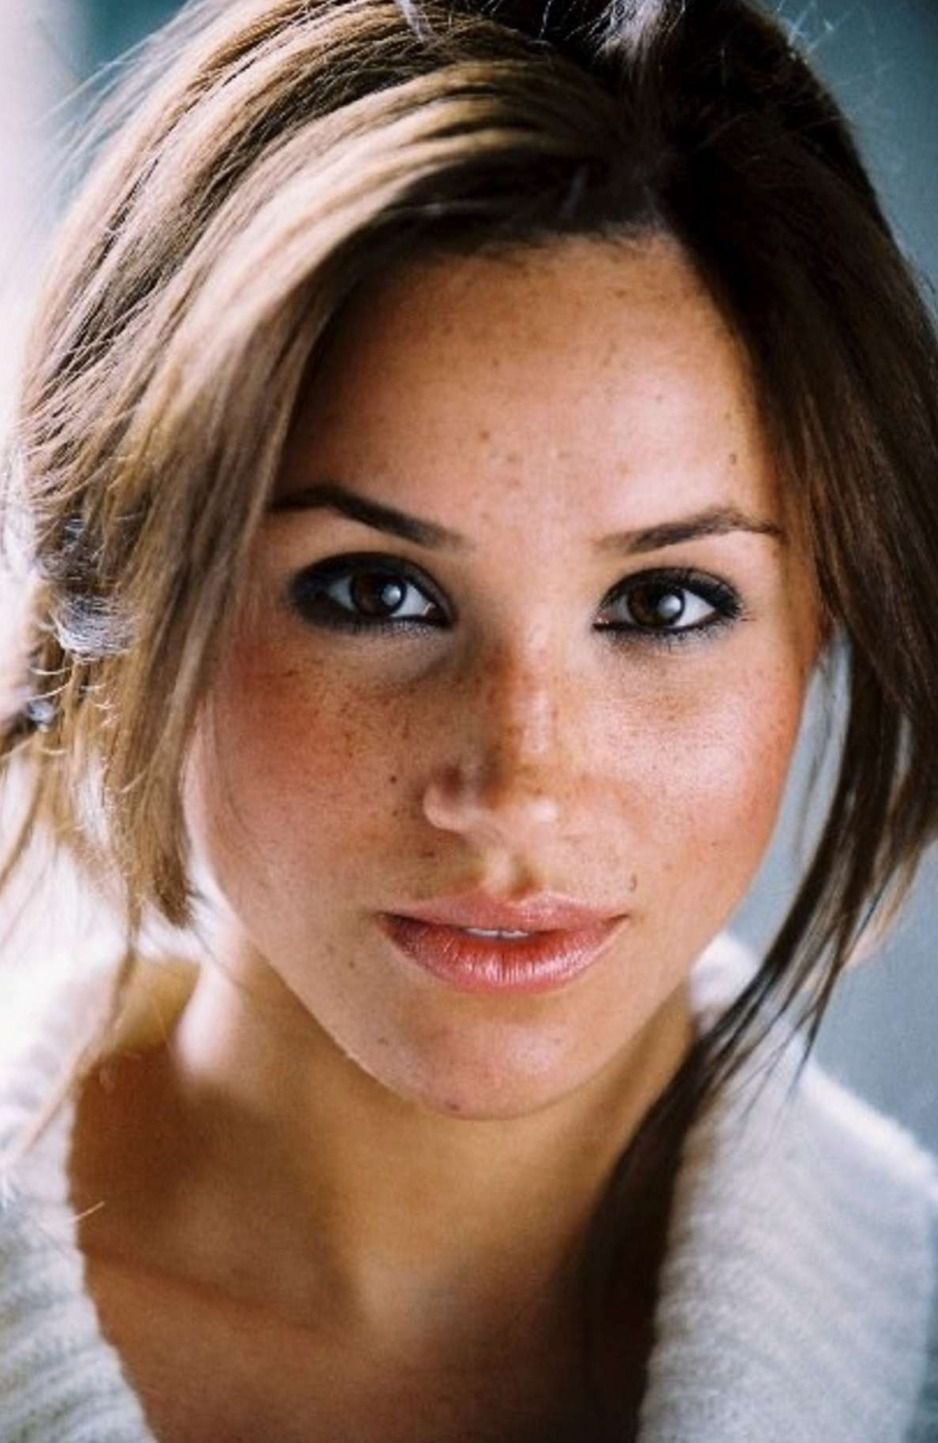 meghan markle, meghan markle natural makeup, faux freckles, how to get fake freckles, natural makeup, natural beauty, perth s best makeup artist, perth makeup artist, alondra for makeup, red head makeup, makeup salon perth, mobile makeup artist perth, alondra for makeup